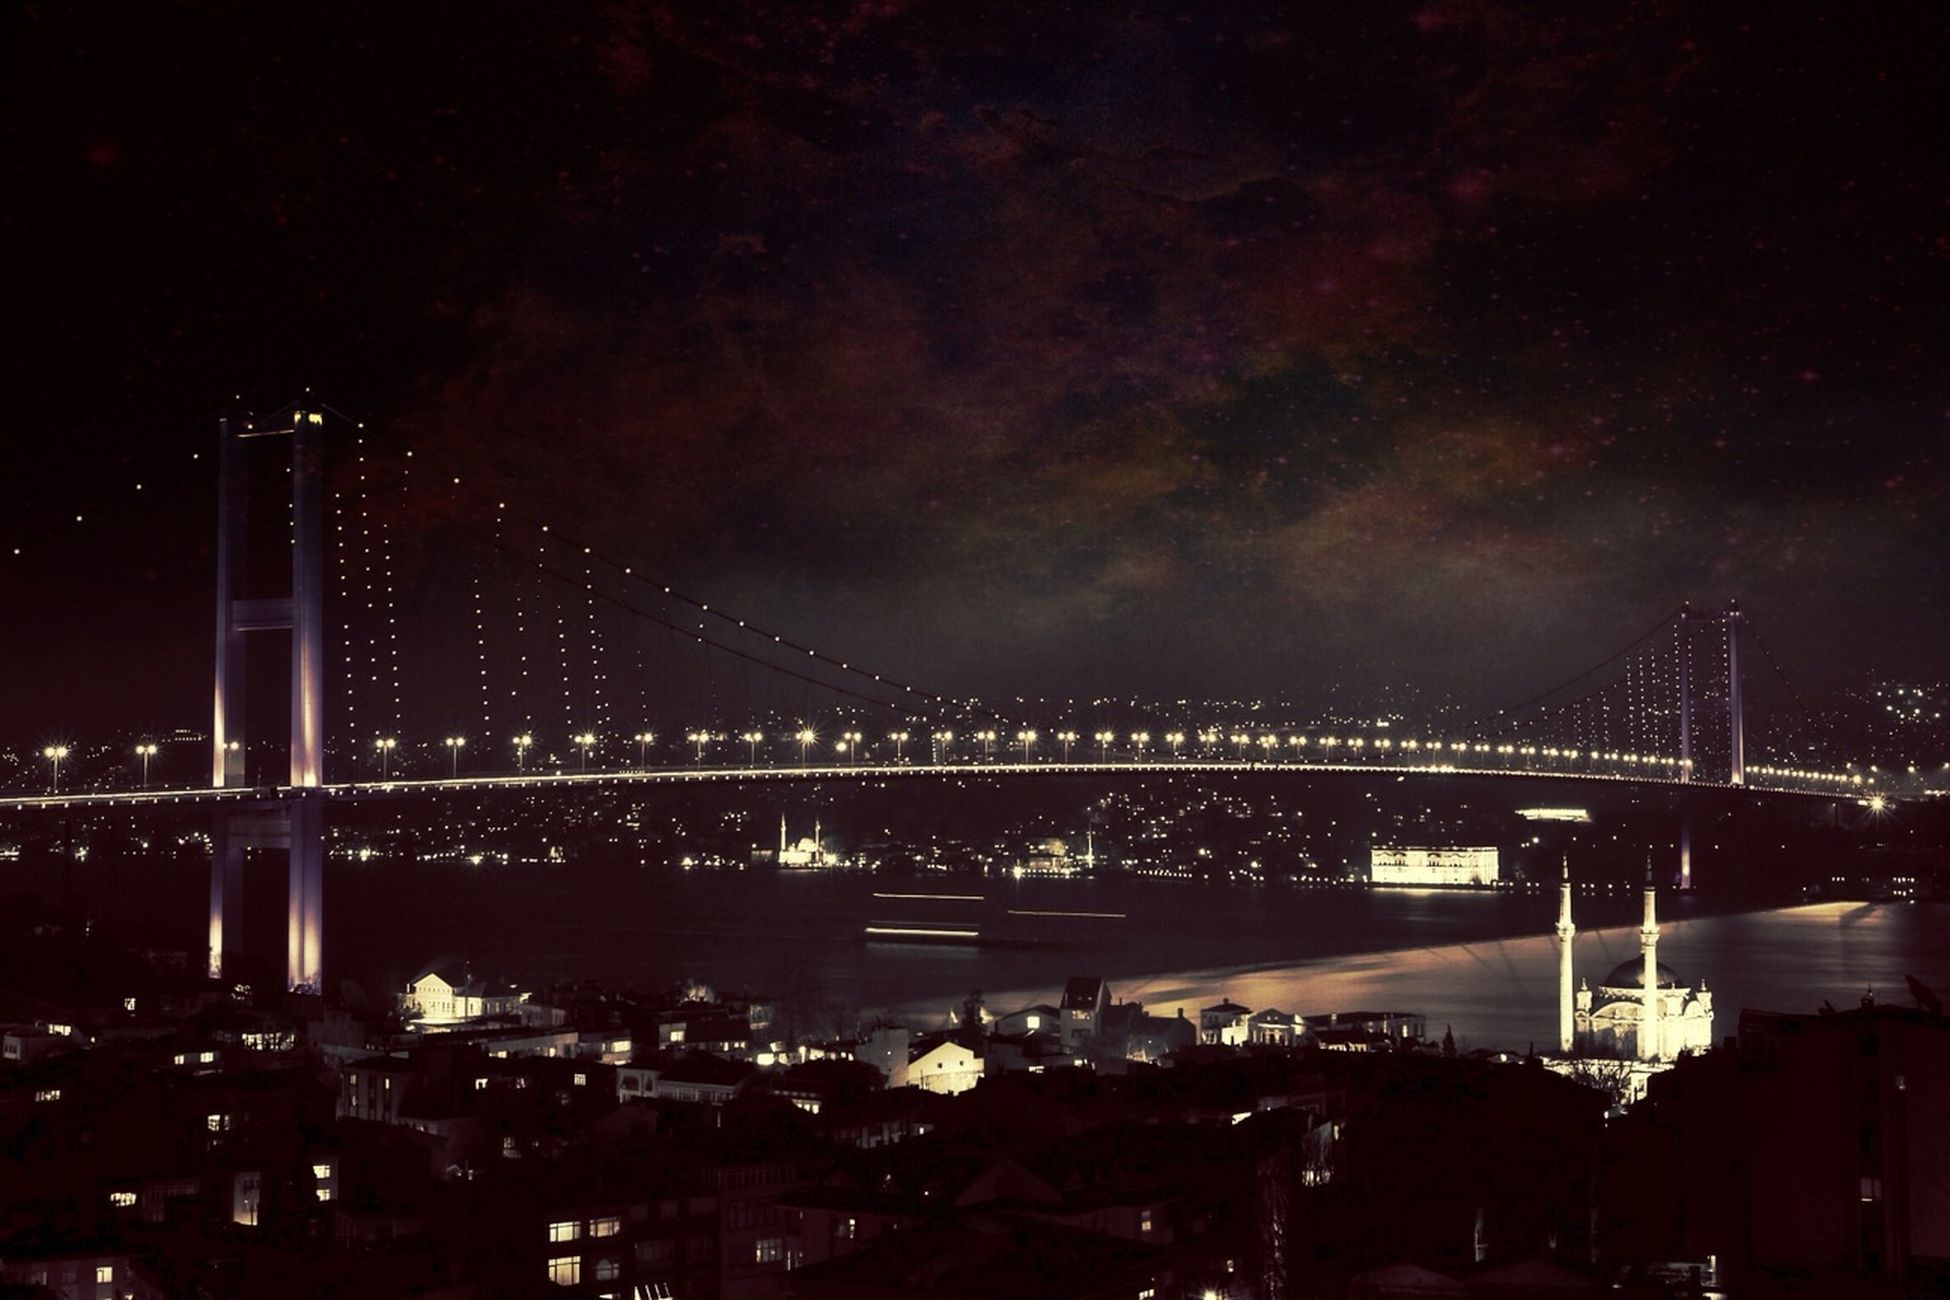 night, illuminated, architecture, built structure, connection, bridge - man made structure, sky, river, city, water, engineering, suspension bridge, travel destinations, bridge, cityscape, famous place, travel, transportation, tourism, capital cities